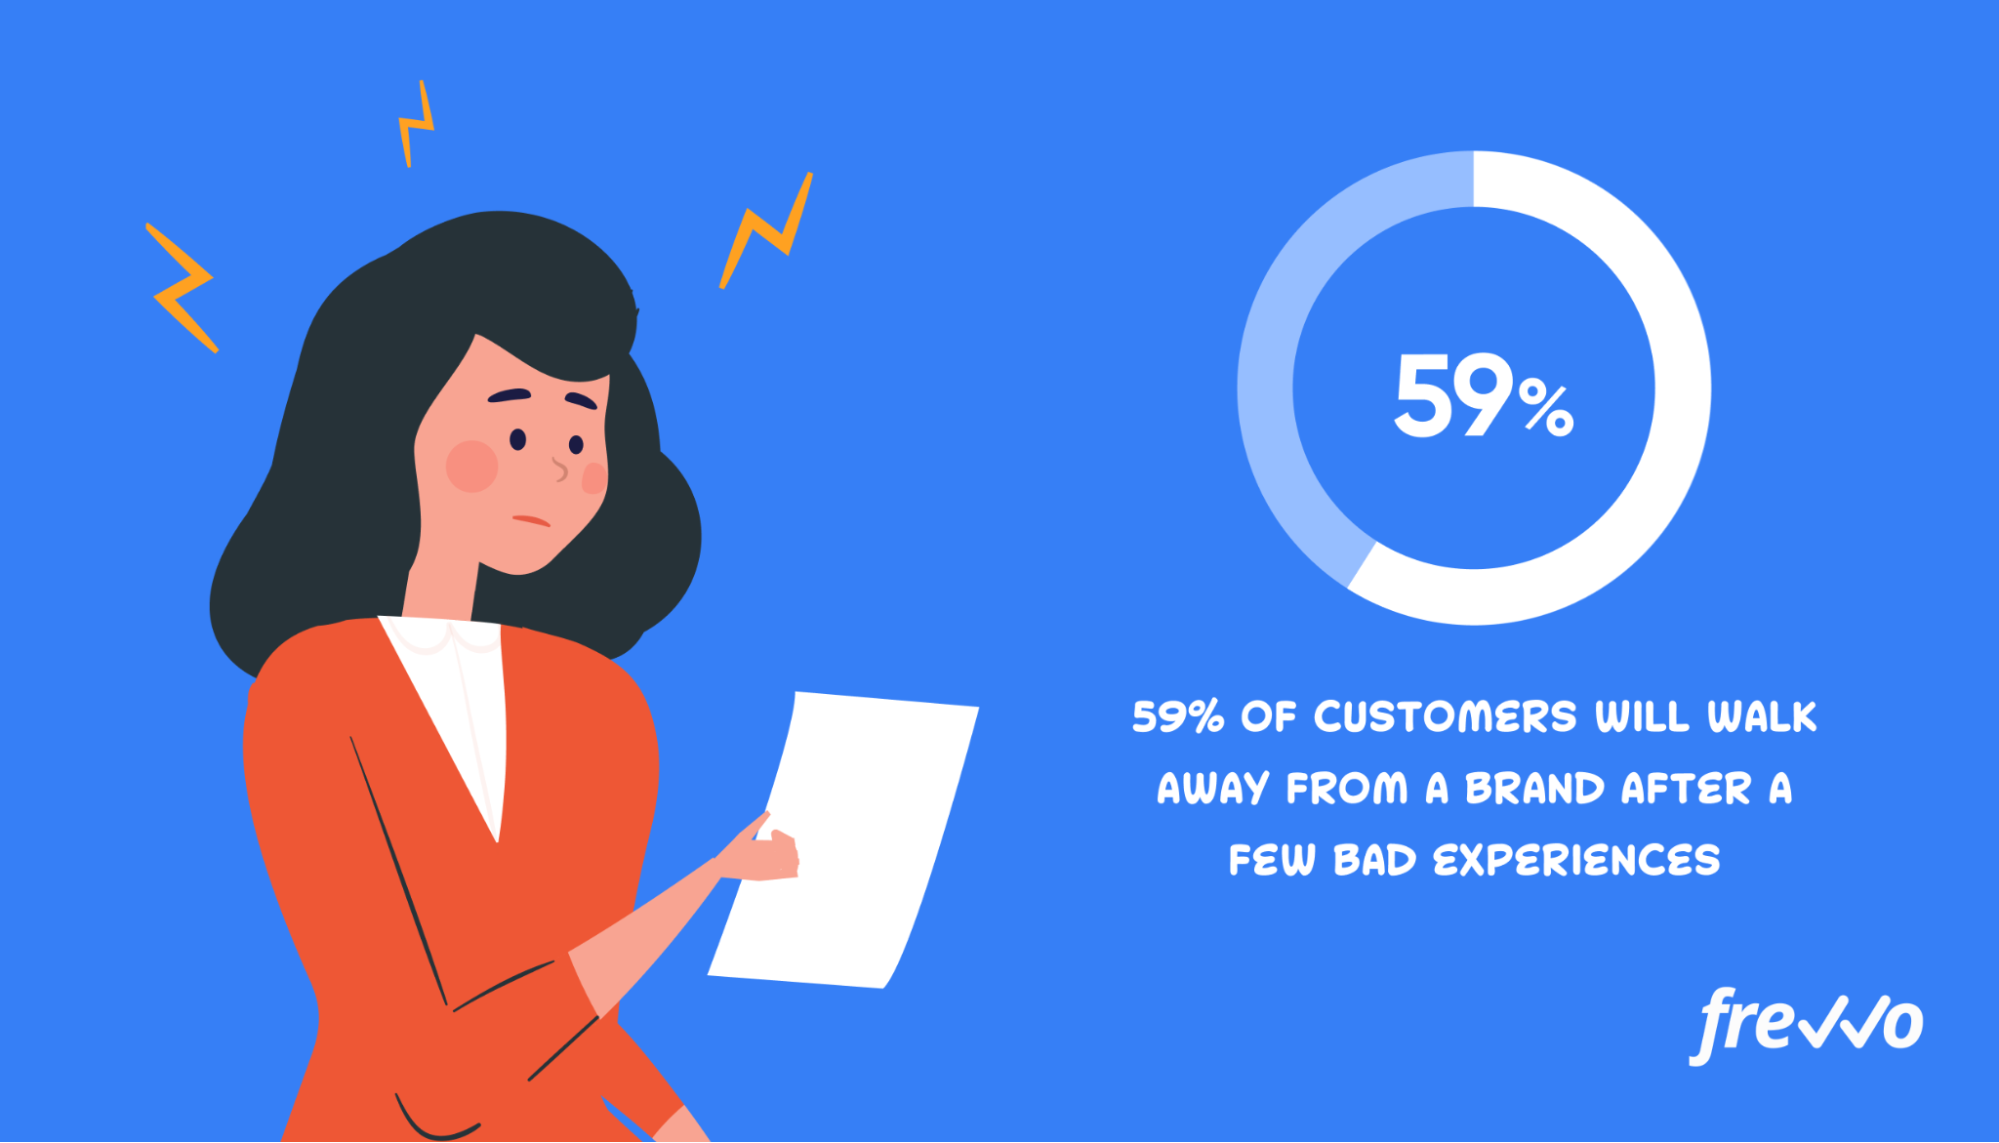 59% of customers will walk away from a brand after a few bad experiences